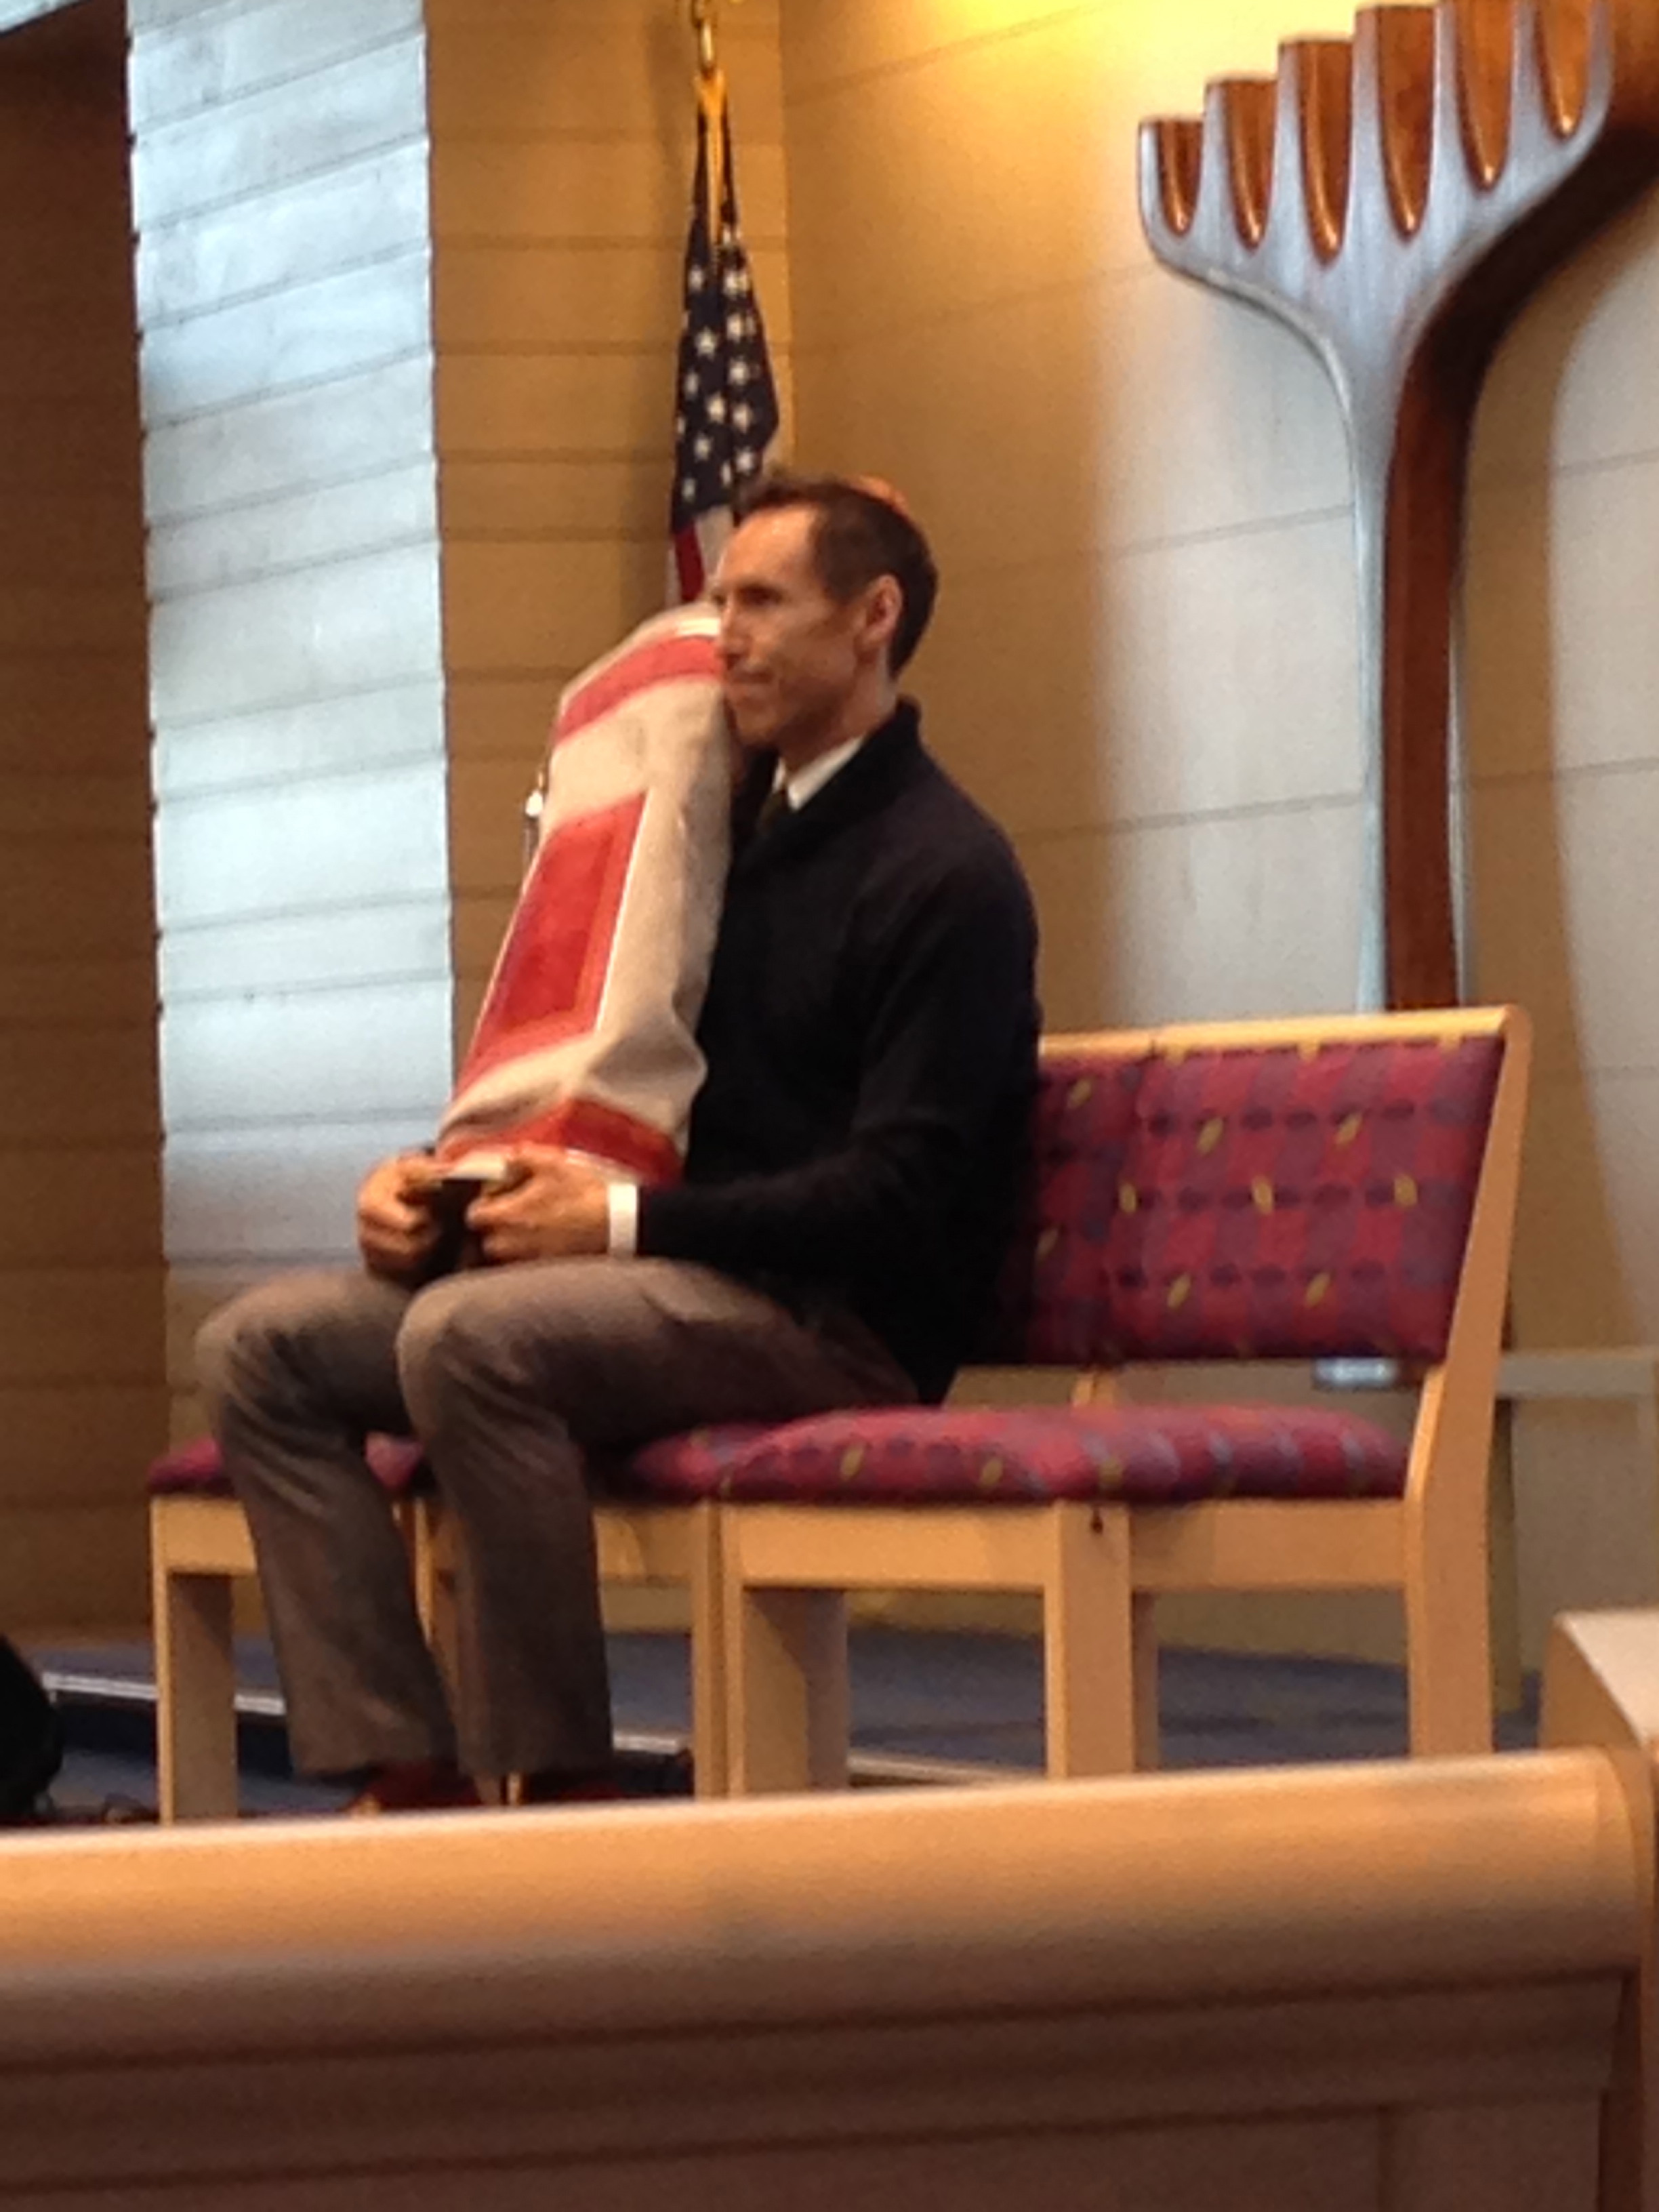 Steve Nash gets cozy with the Torah at a Barmitzvah